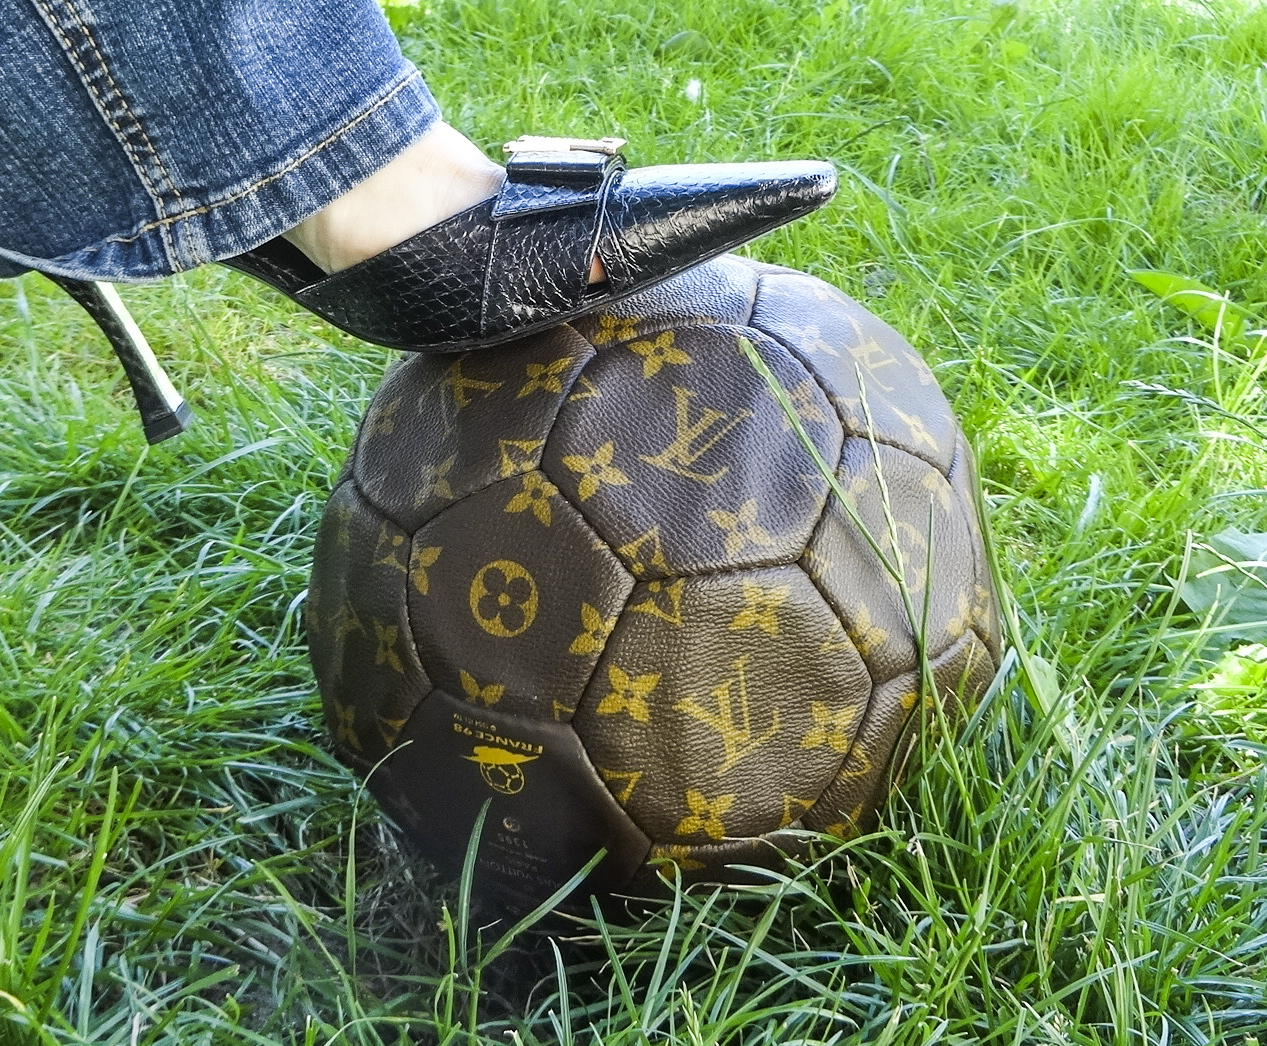 Louis Vuitton Football ballon foot et filet 1 HappyFace313